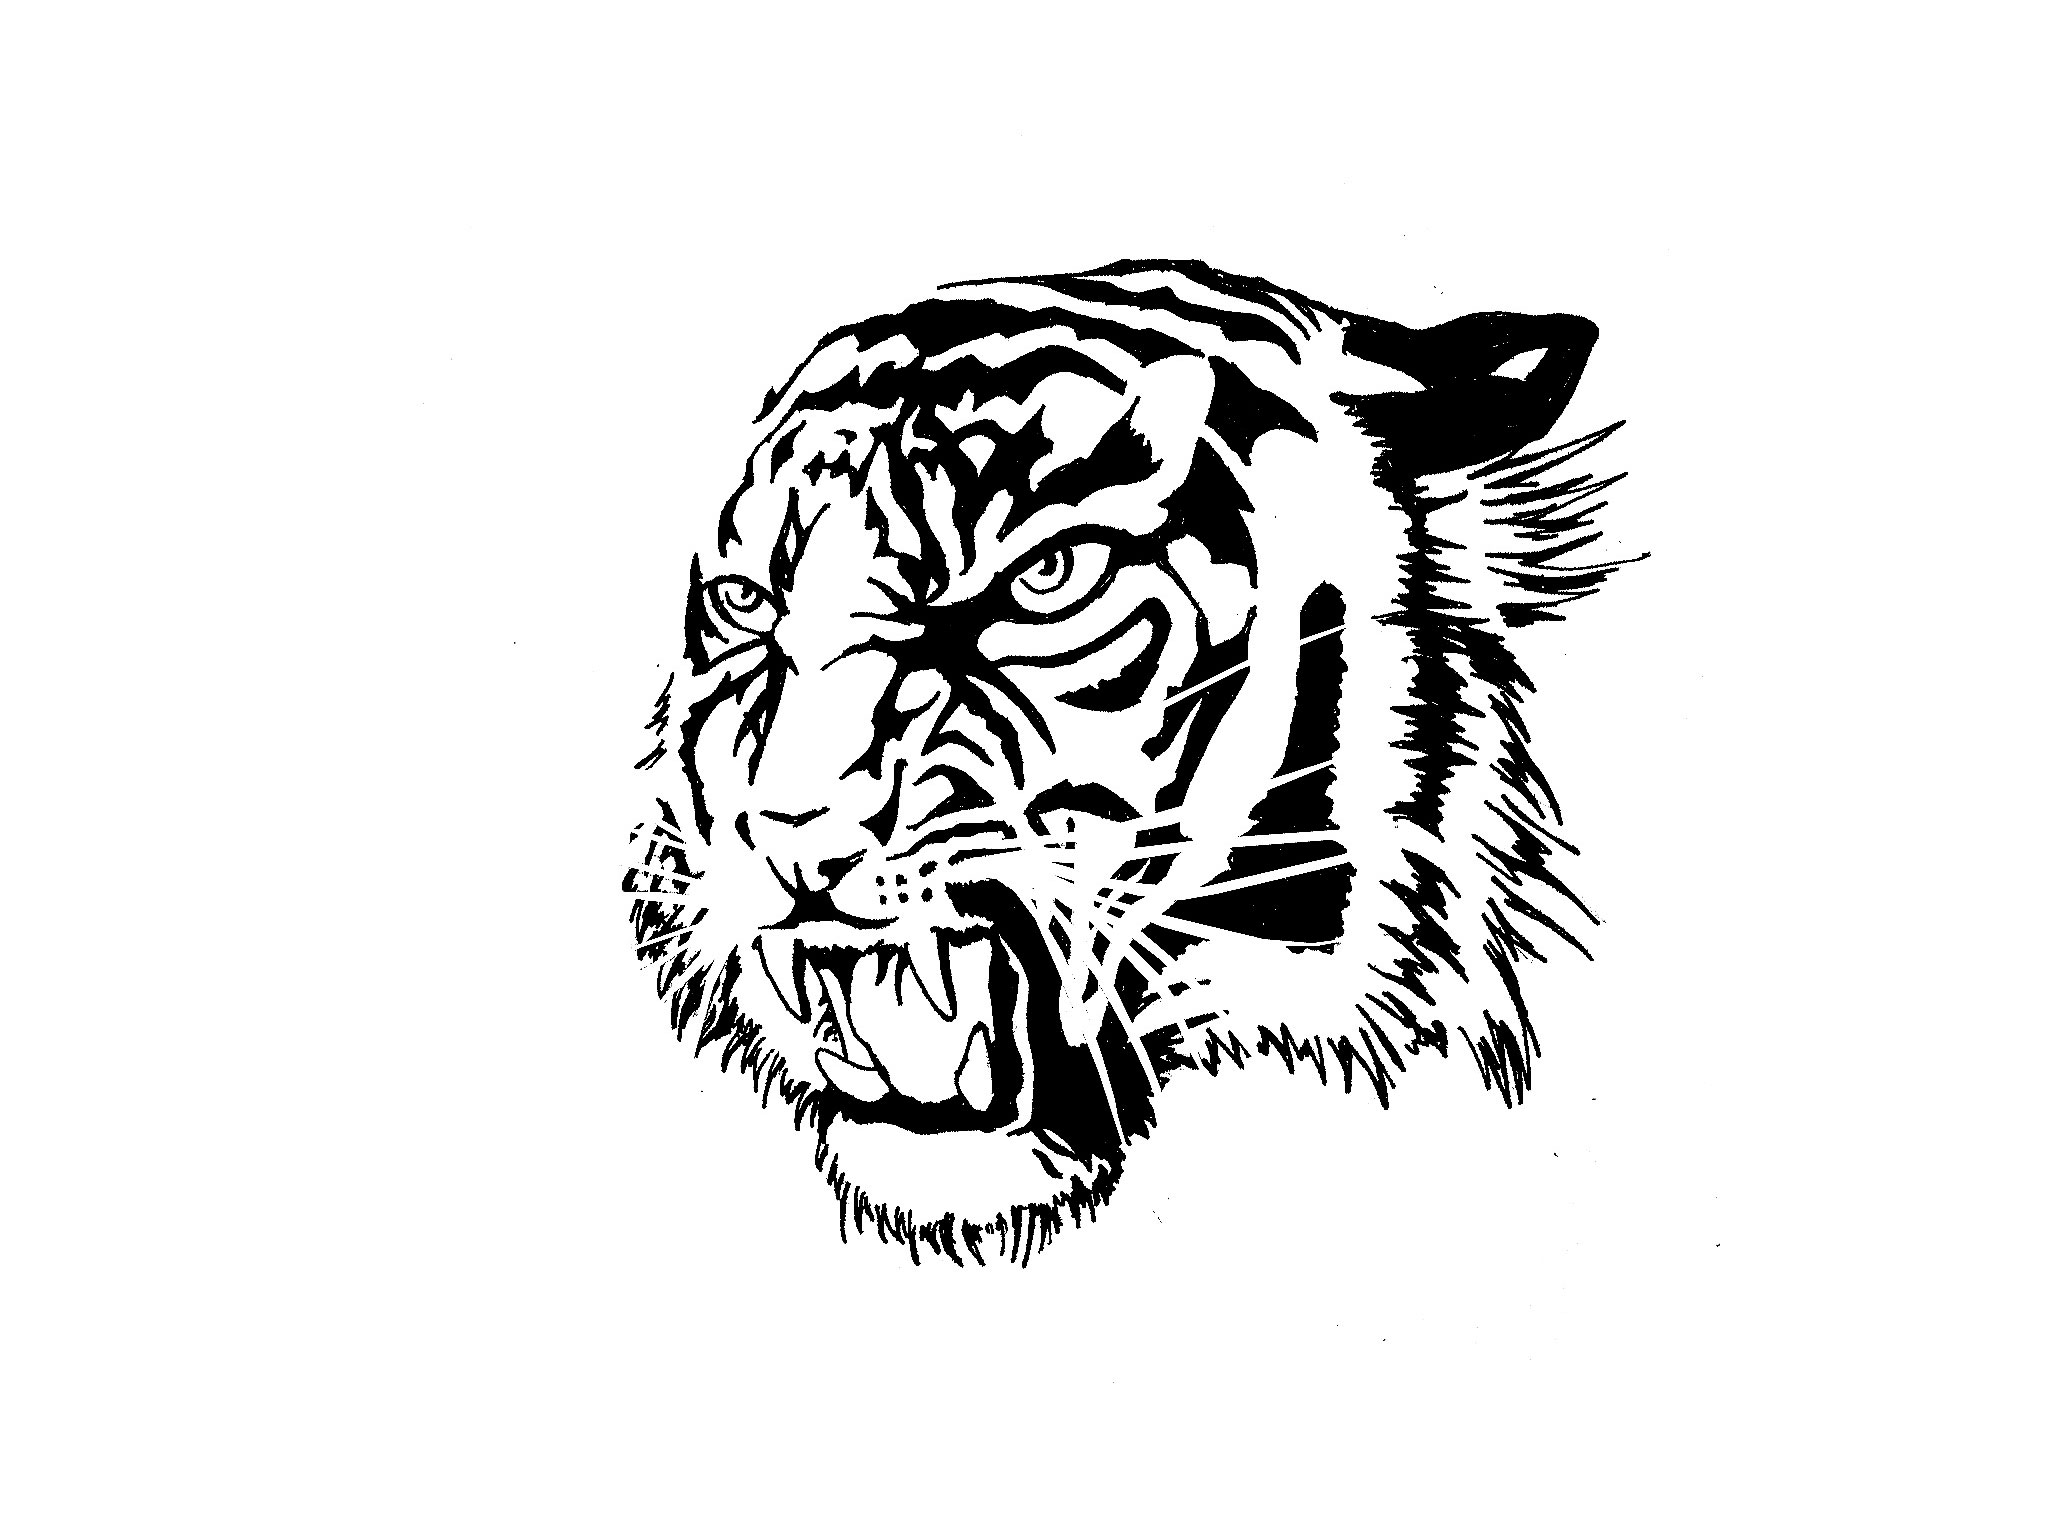 Gnarling tiger head tattoo design - Tattooimages.biz